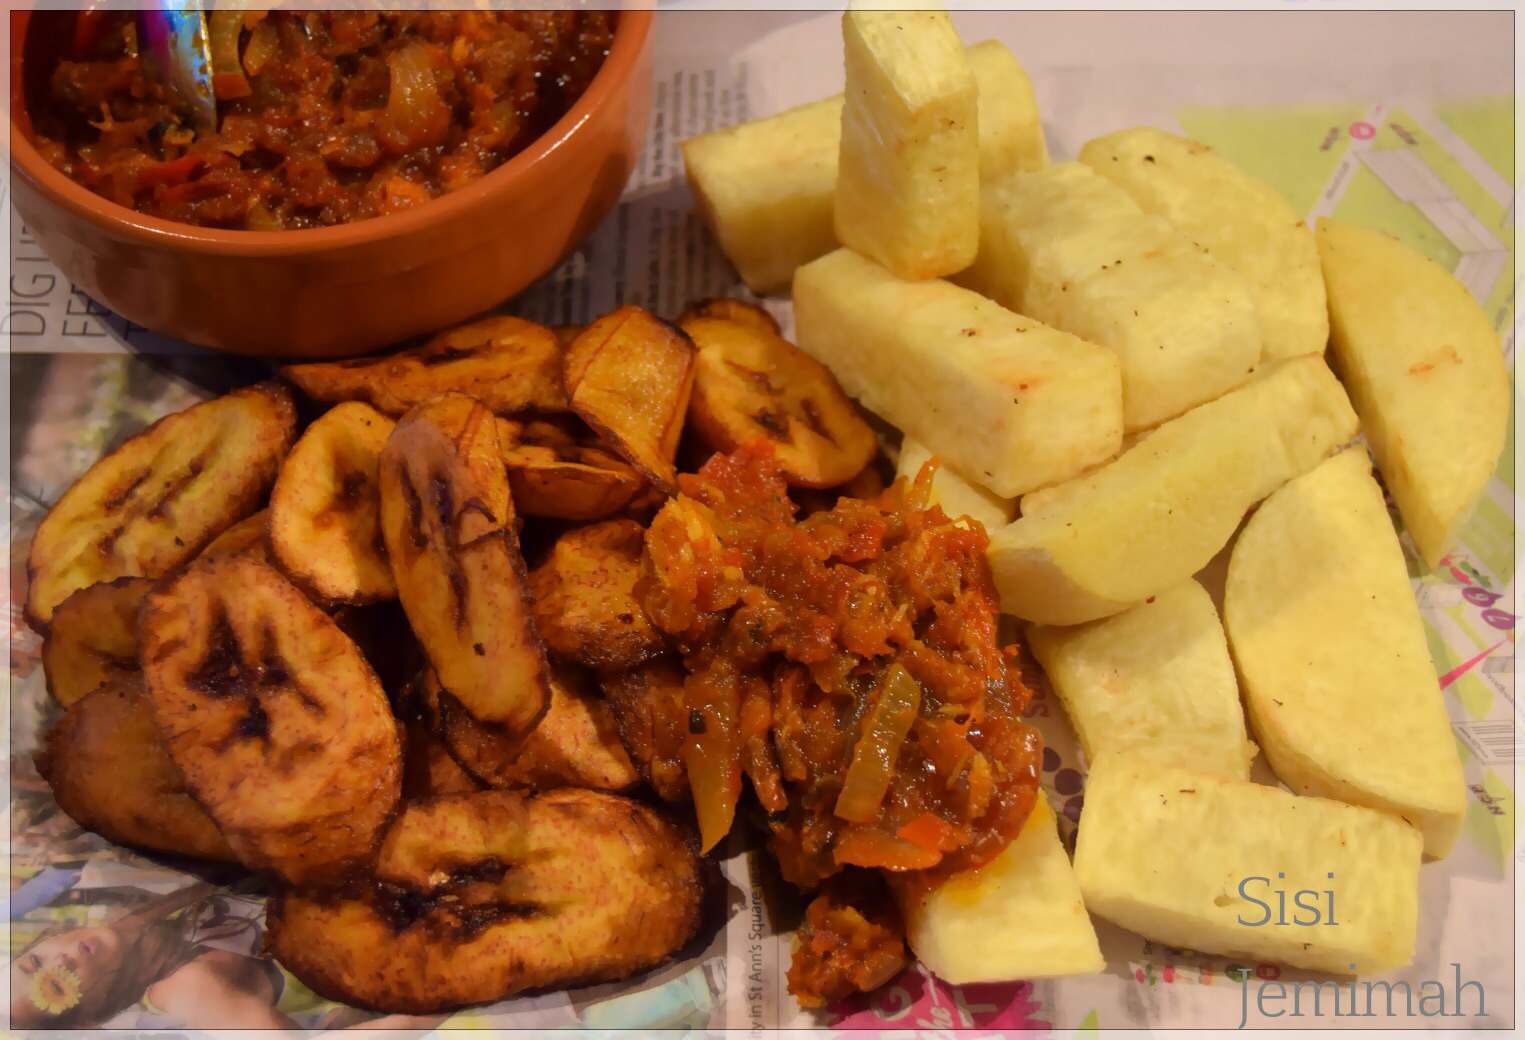 Fried Yam Dundun And Ata Dindin Sisi Jemimah